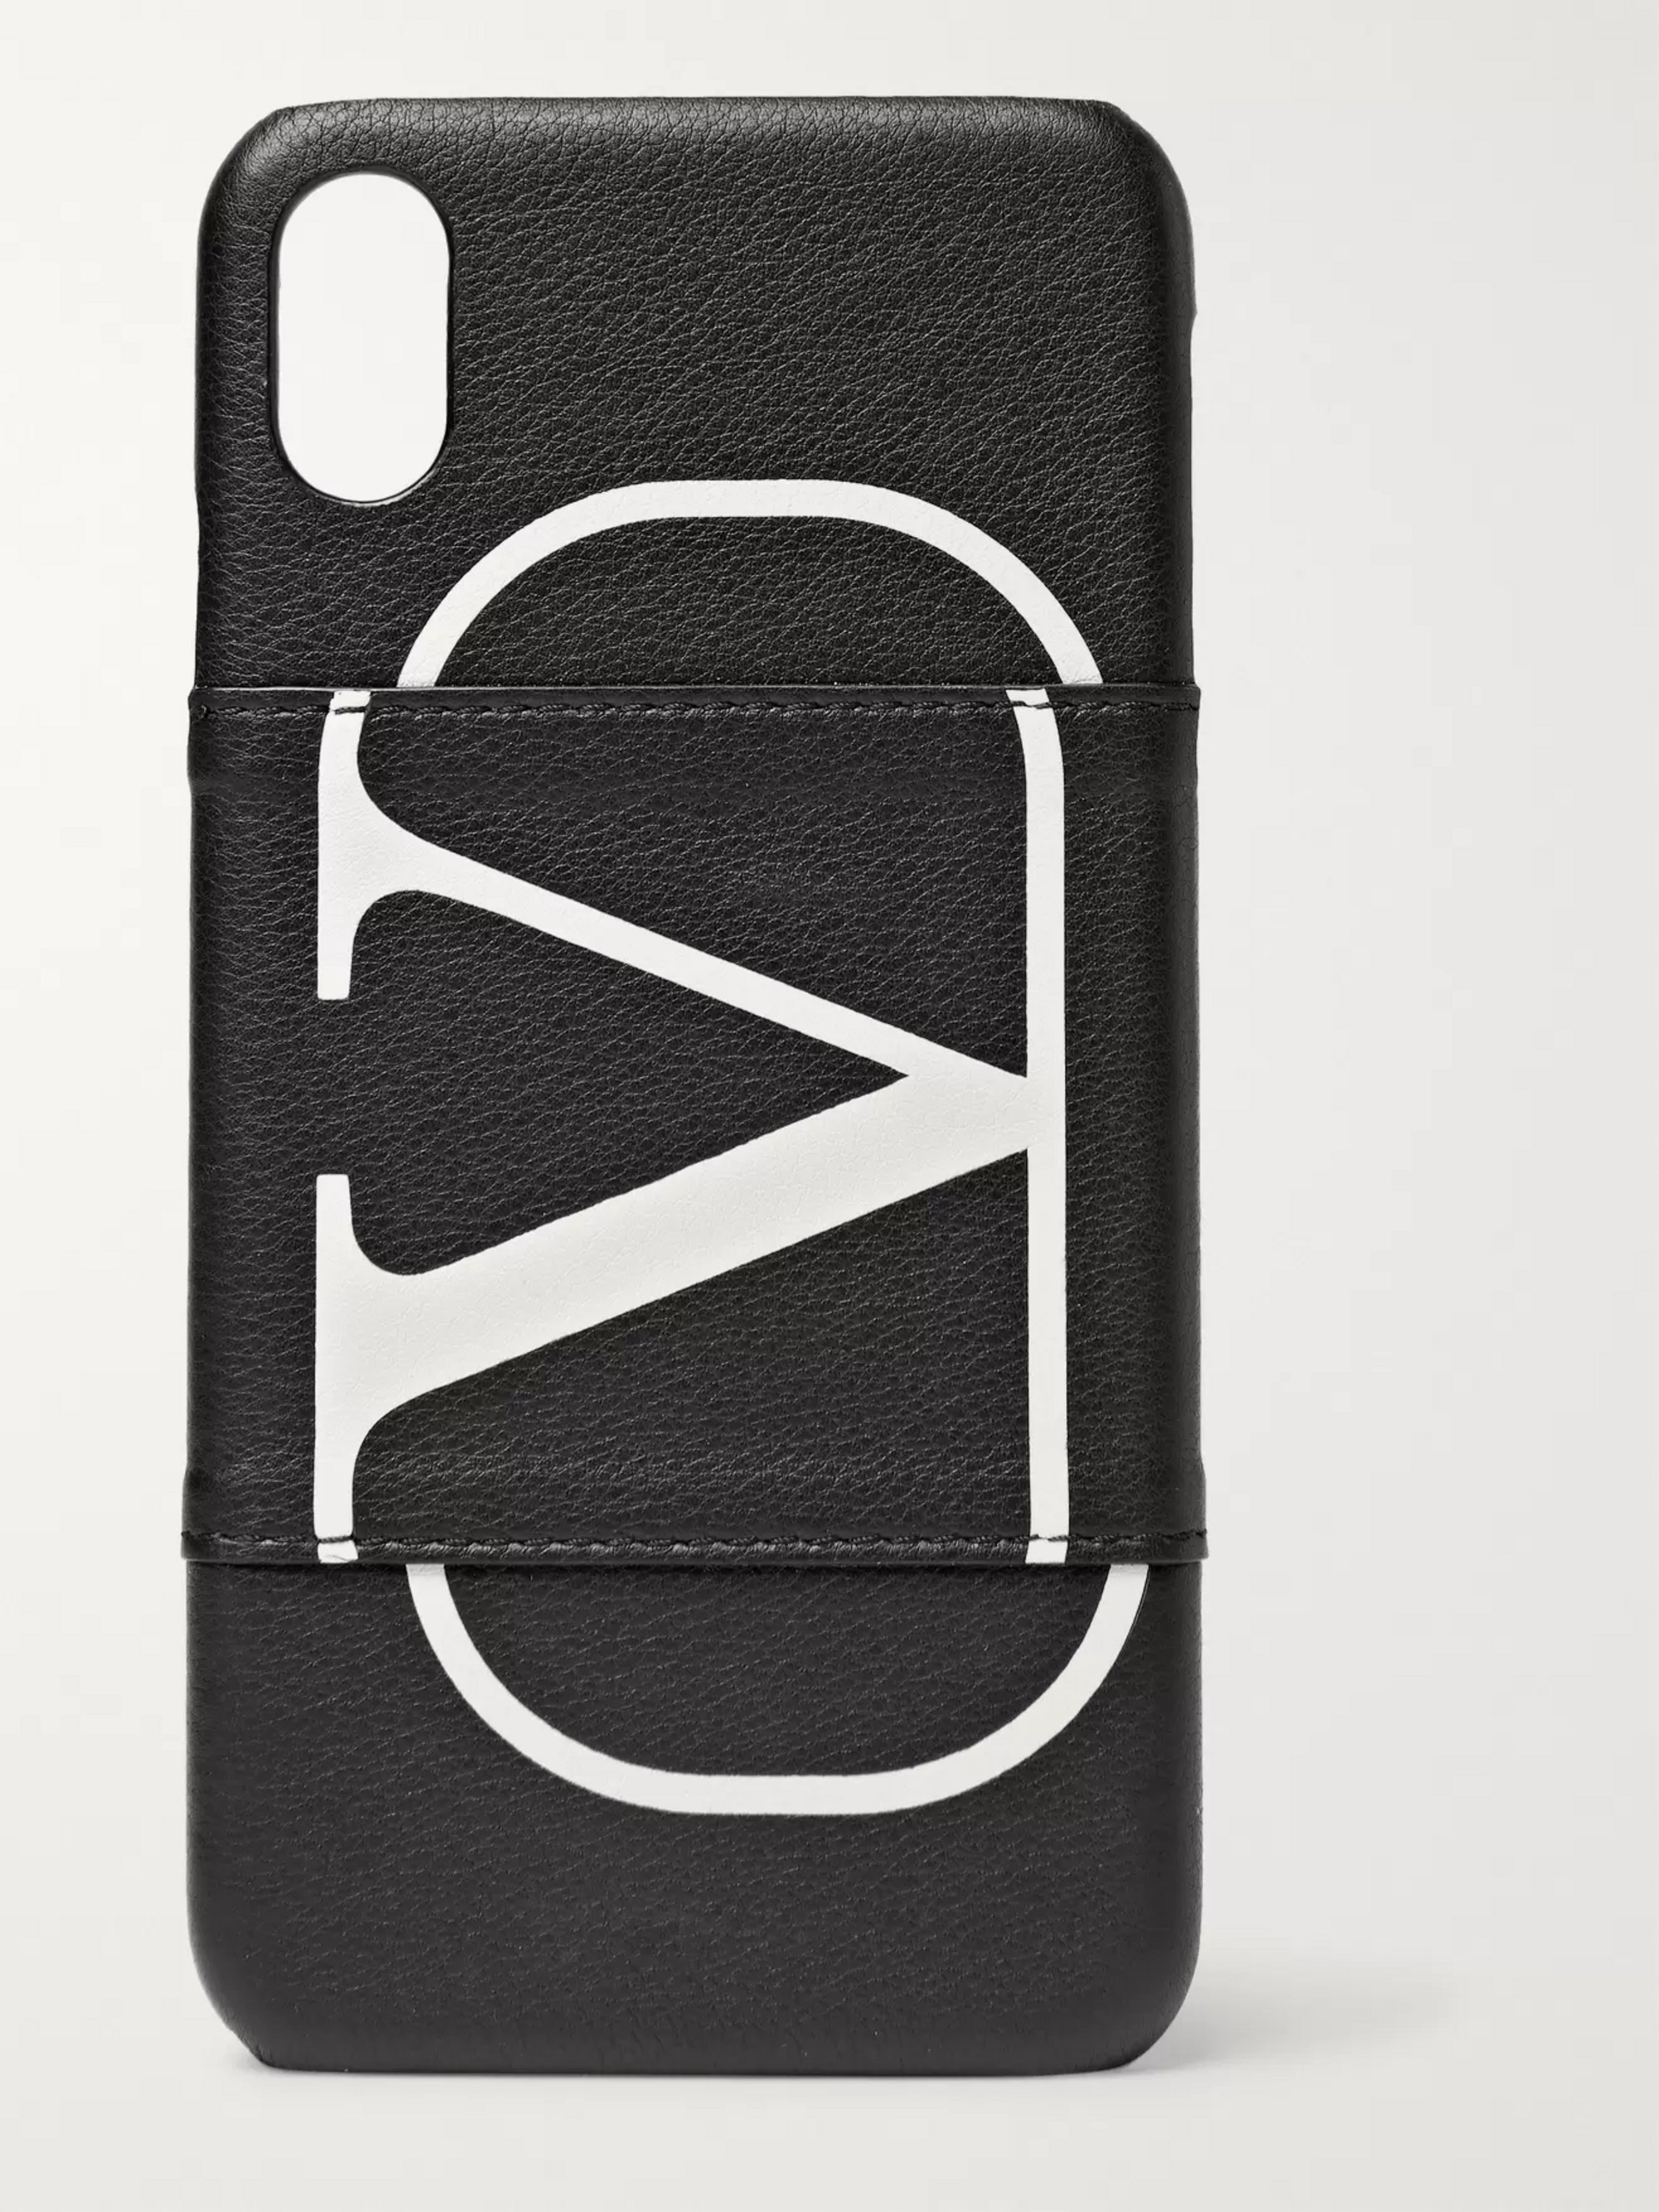 Valentino Valentino Garavani Full-Grain Leather iPhone XS Case